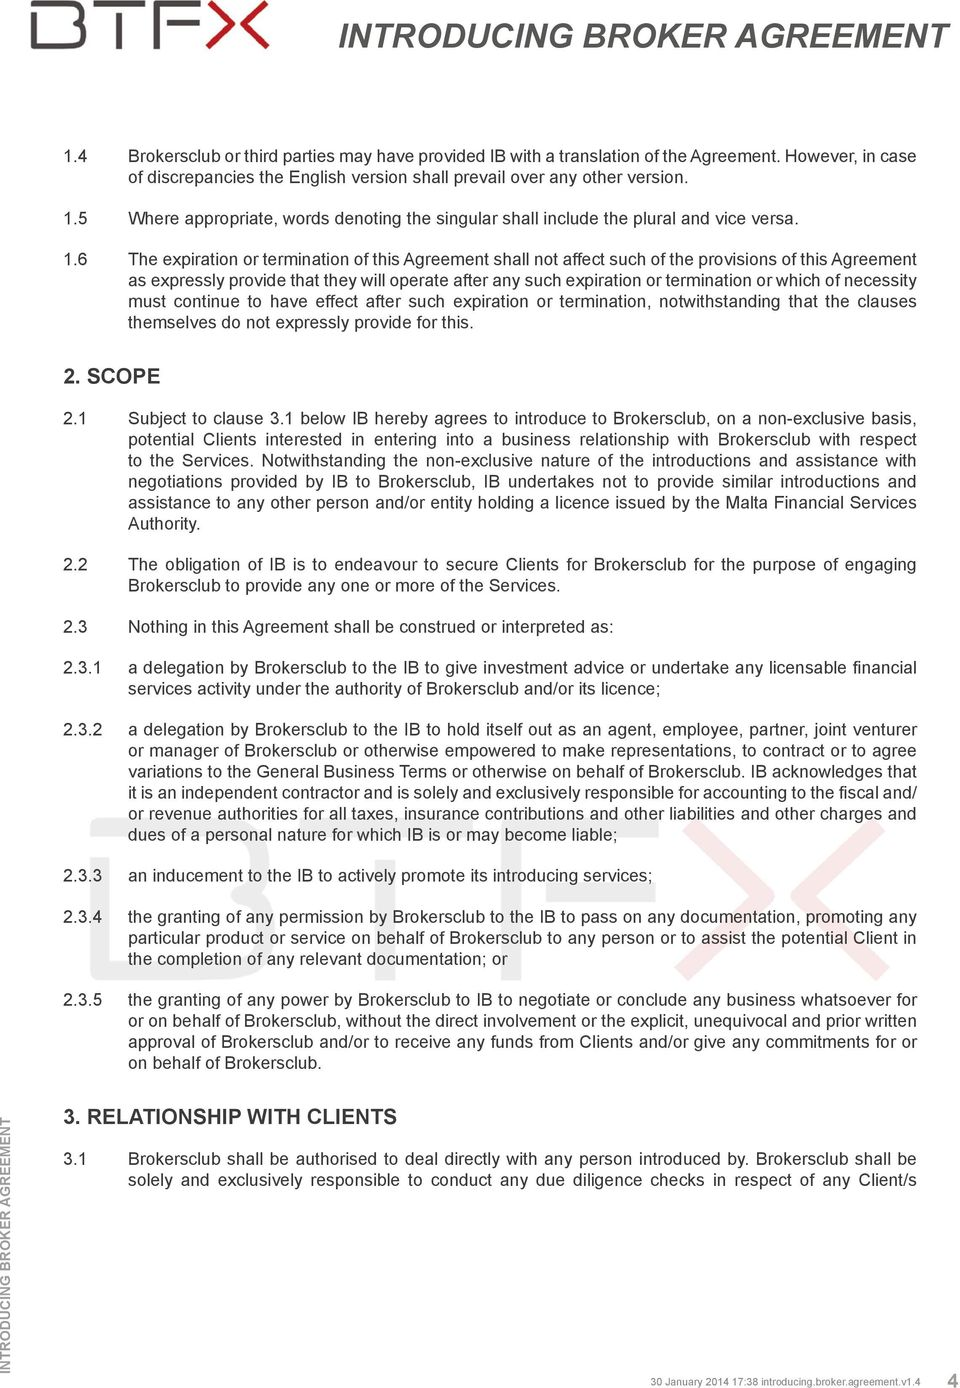 6 The expiration or termination of this Agreement shall not affect such of the provisions of this Agreement as expressly provide that they will operate after any such expiration or termination or